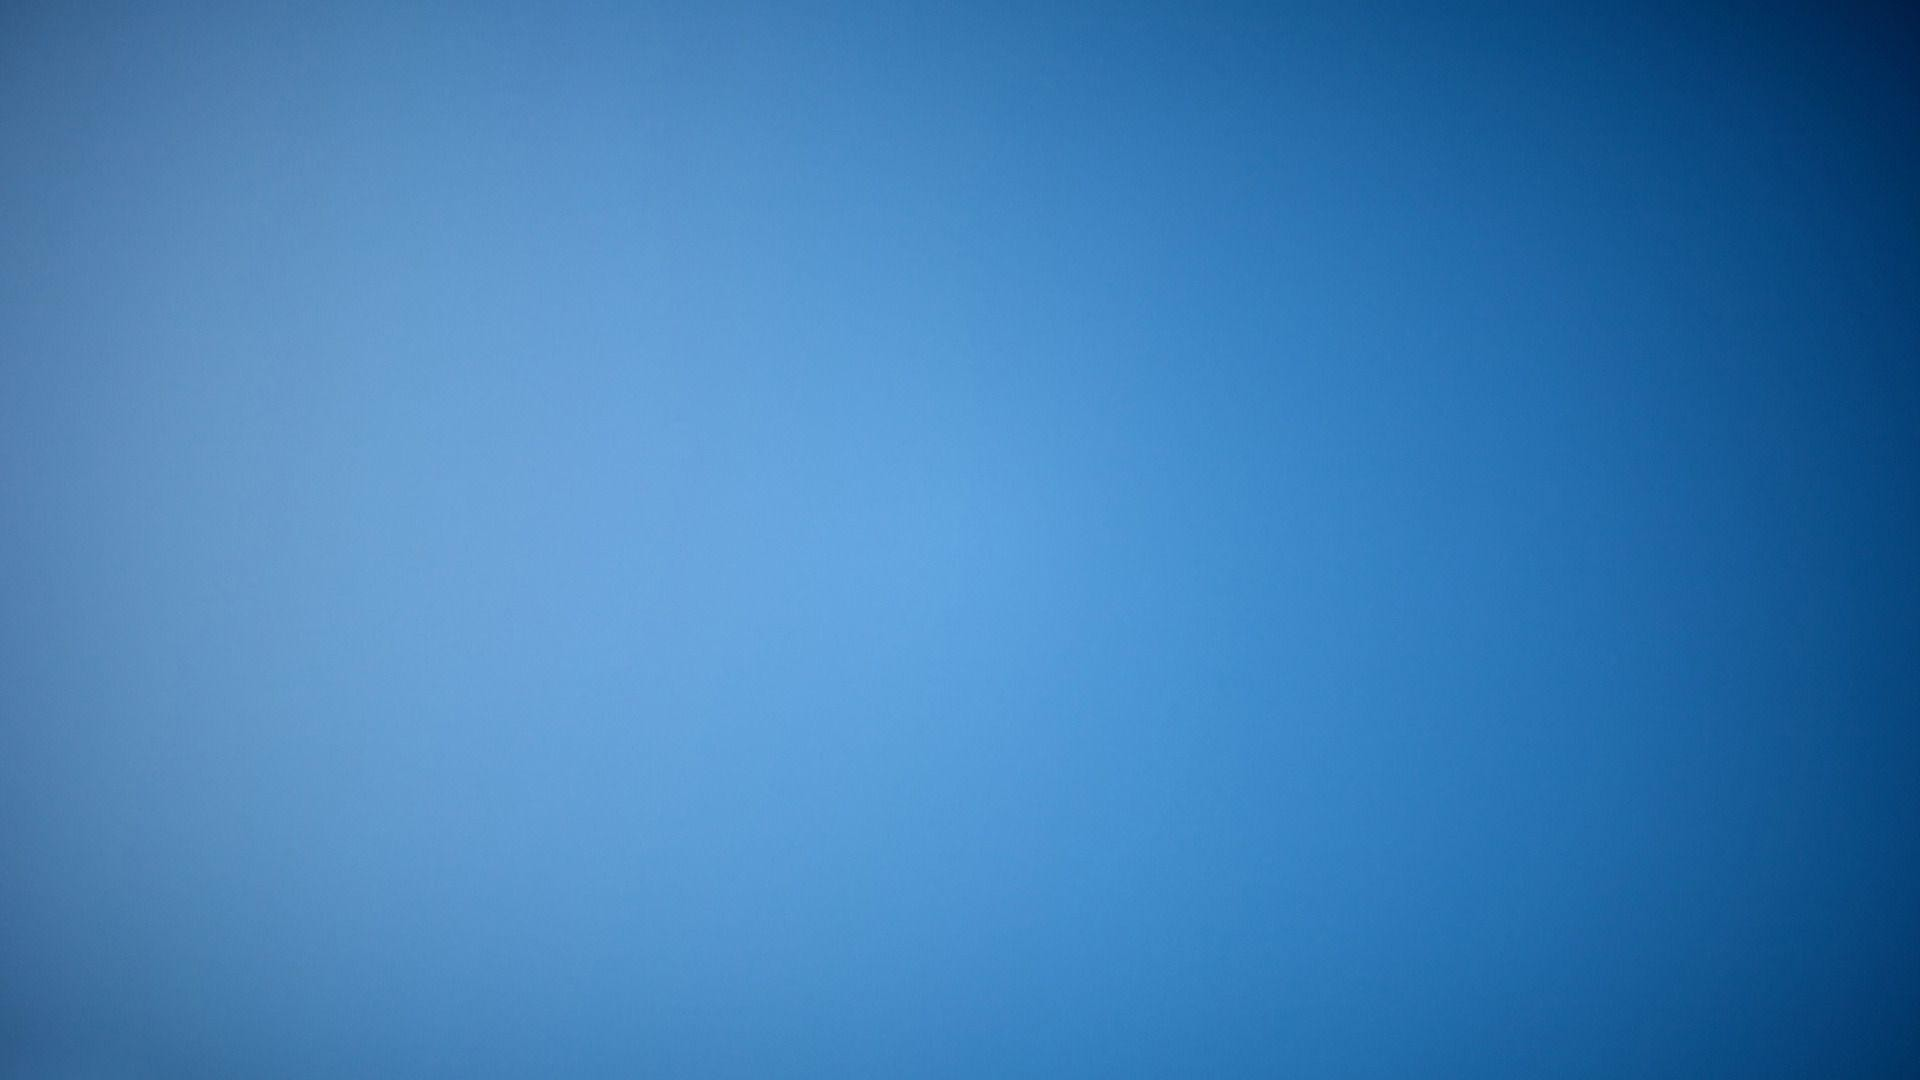 1920x1080 Blue Gradient Wallpapers and Background